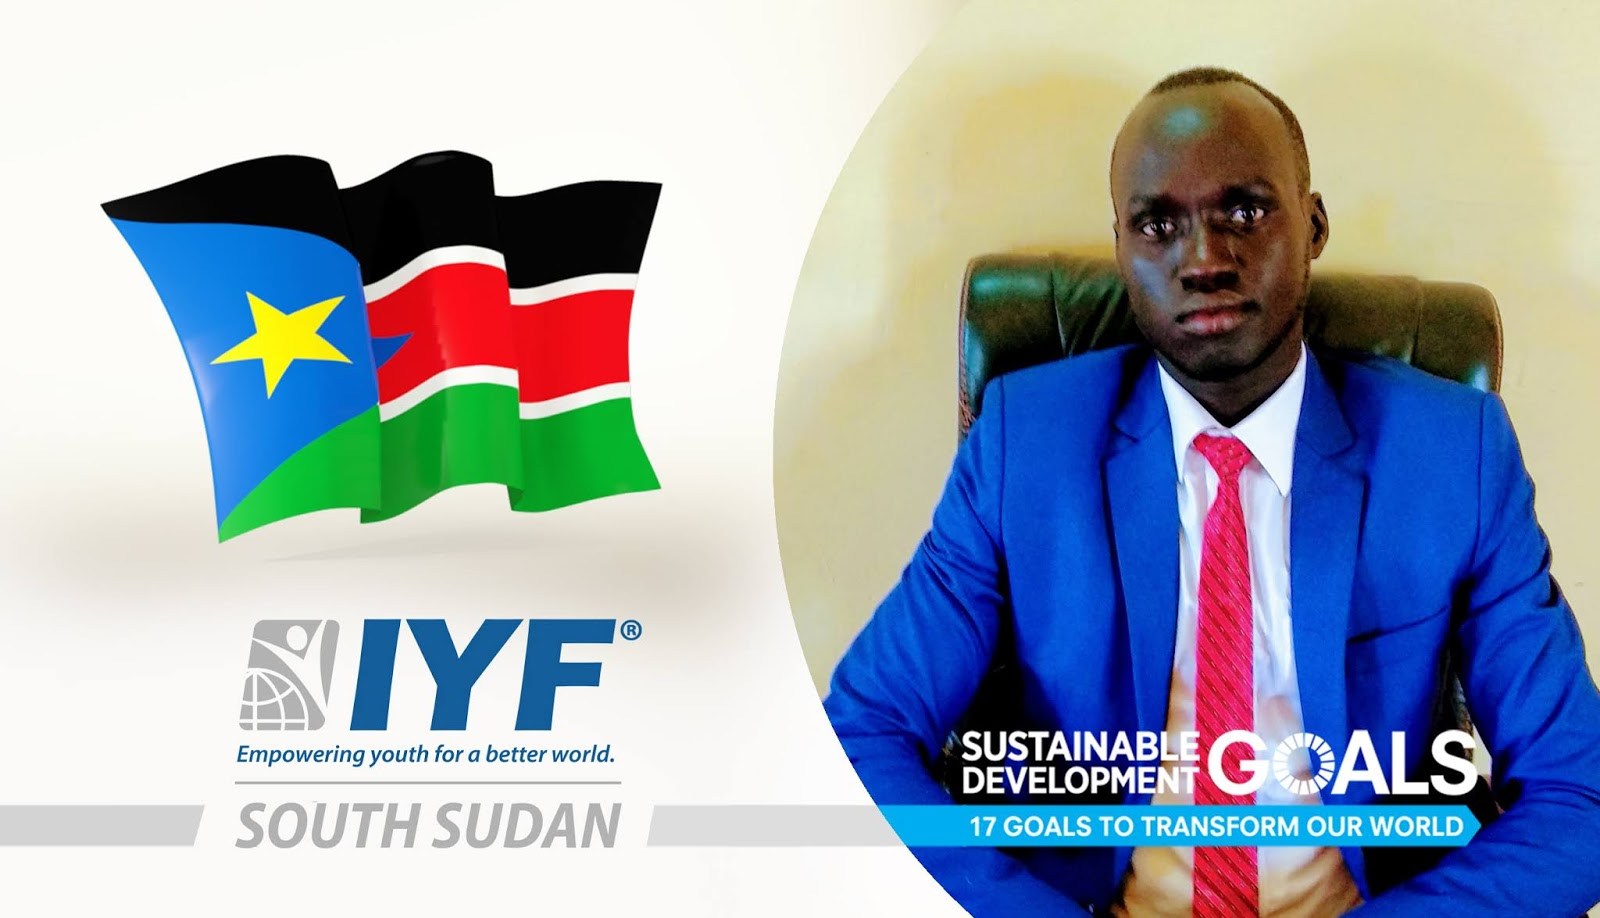 Lino Chuol, IYF Representative in South Sudan